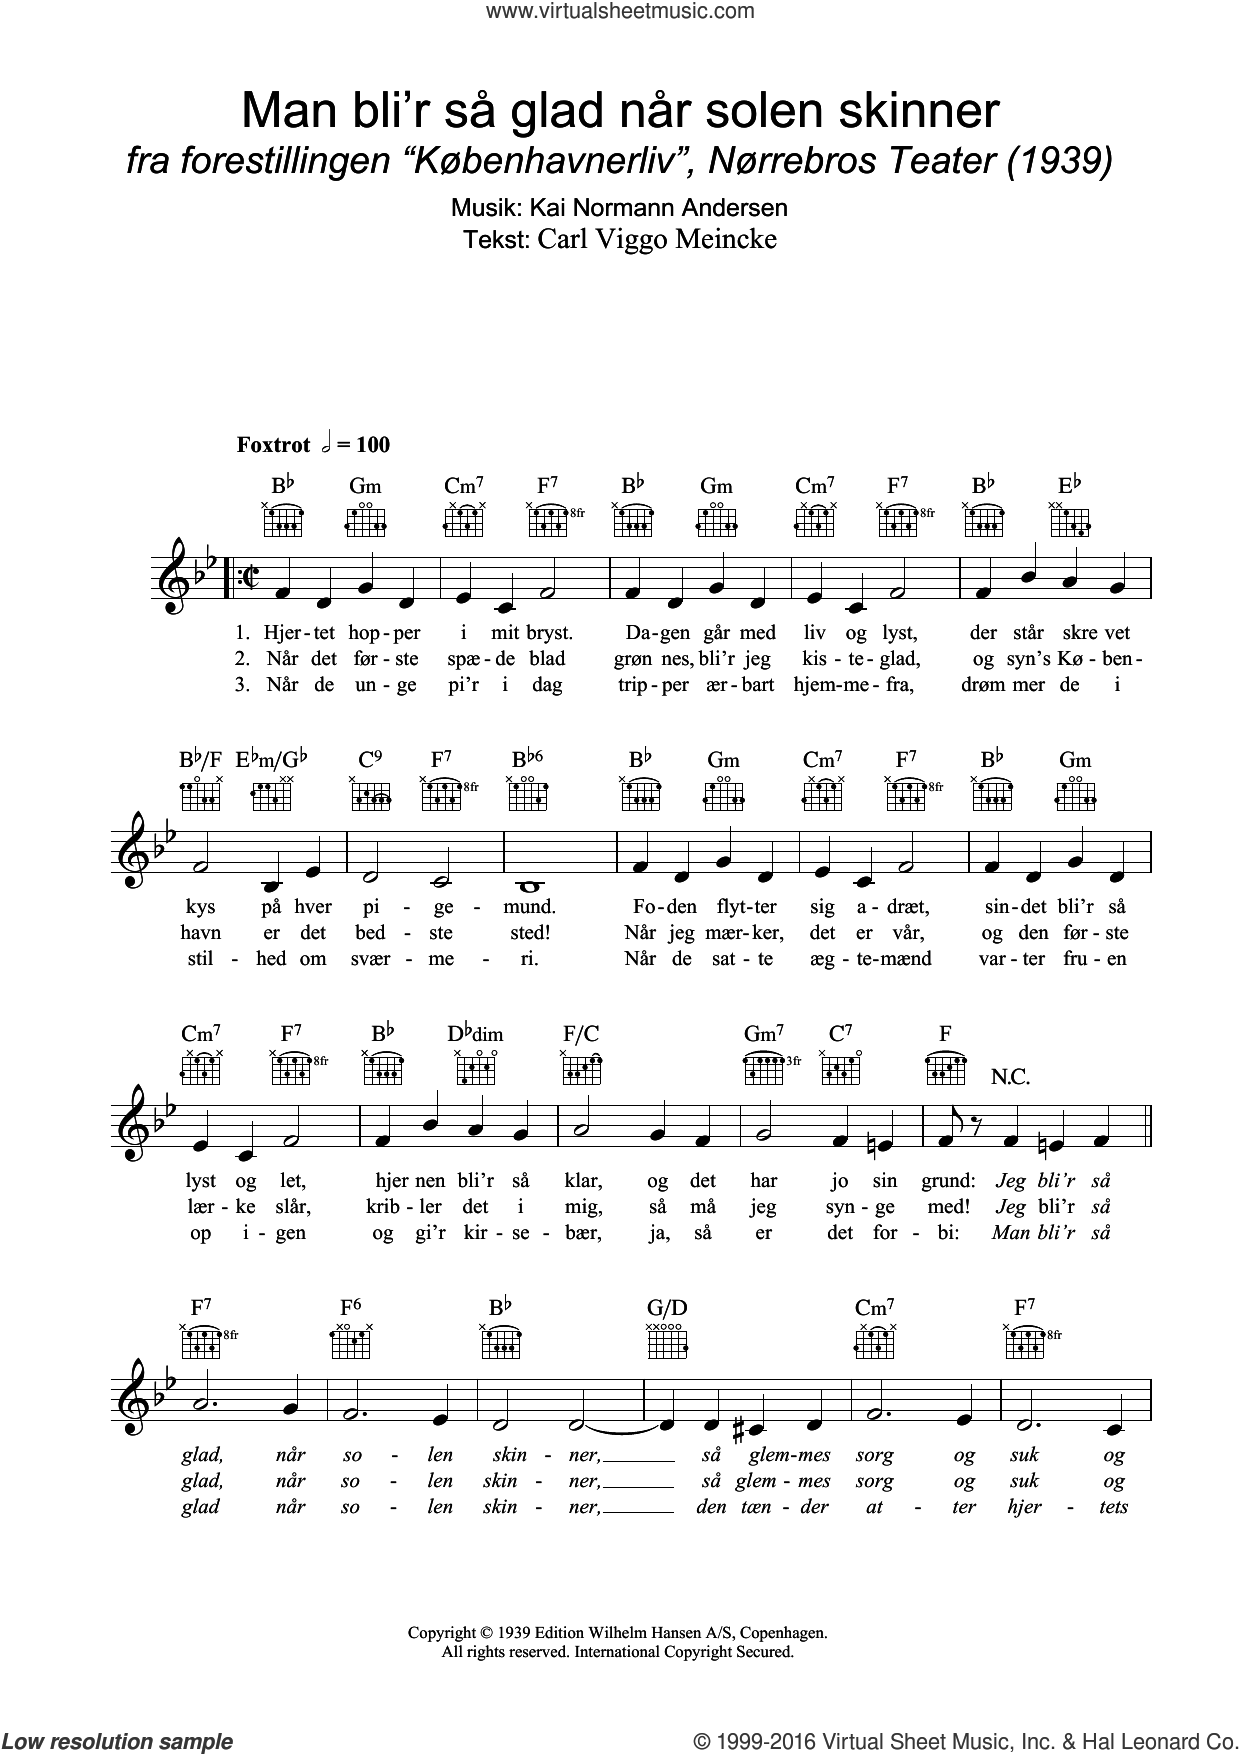 Man Bli'r Sa Glad Nar Solen Skinner sheet music for voice and other instruments (fake book) by Kai Normann Andersen and Carl Viggo Meincke, intermediate skill level